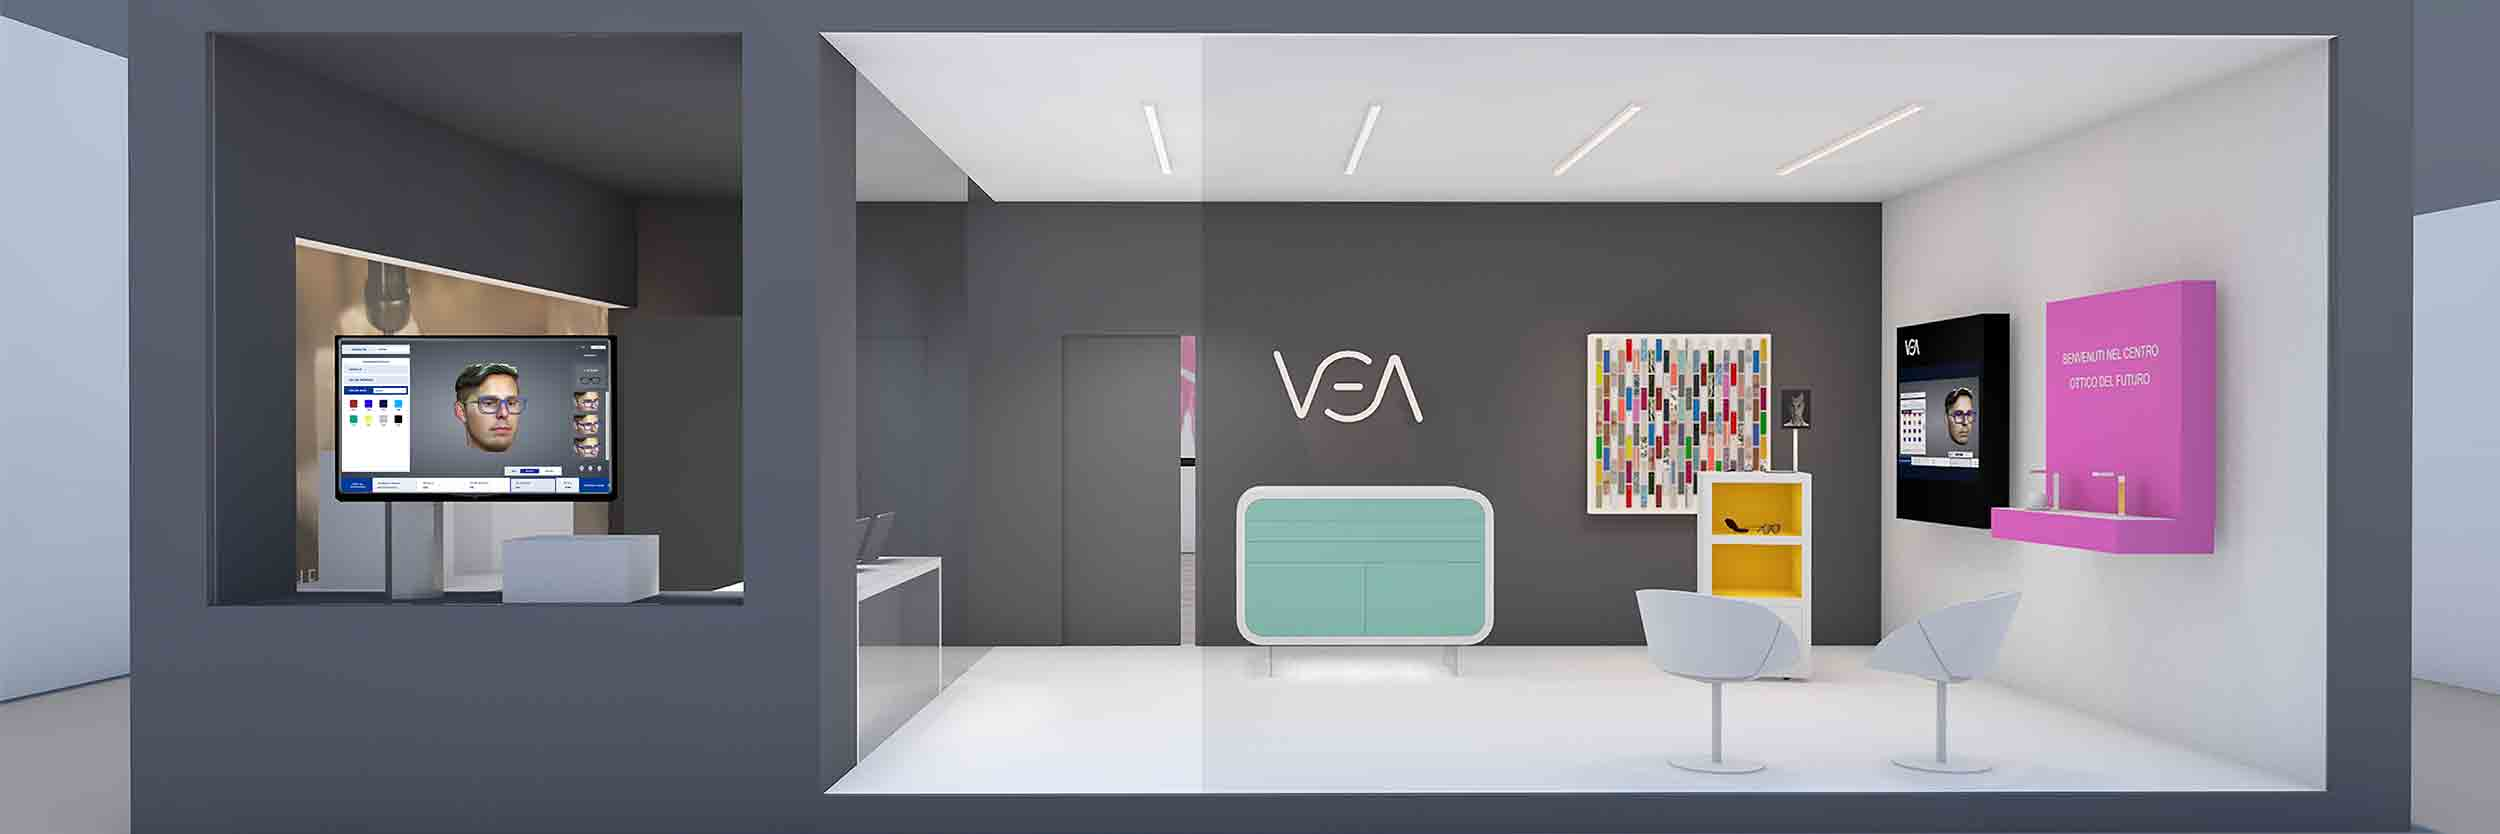 Thema - A Family Factory will present a world premiere of its new concept store.